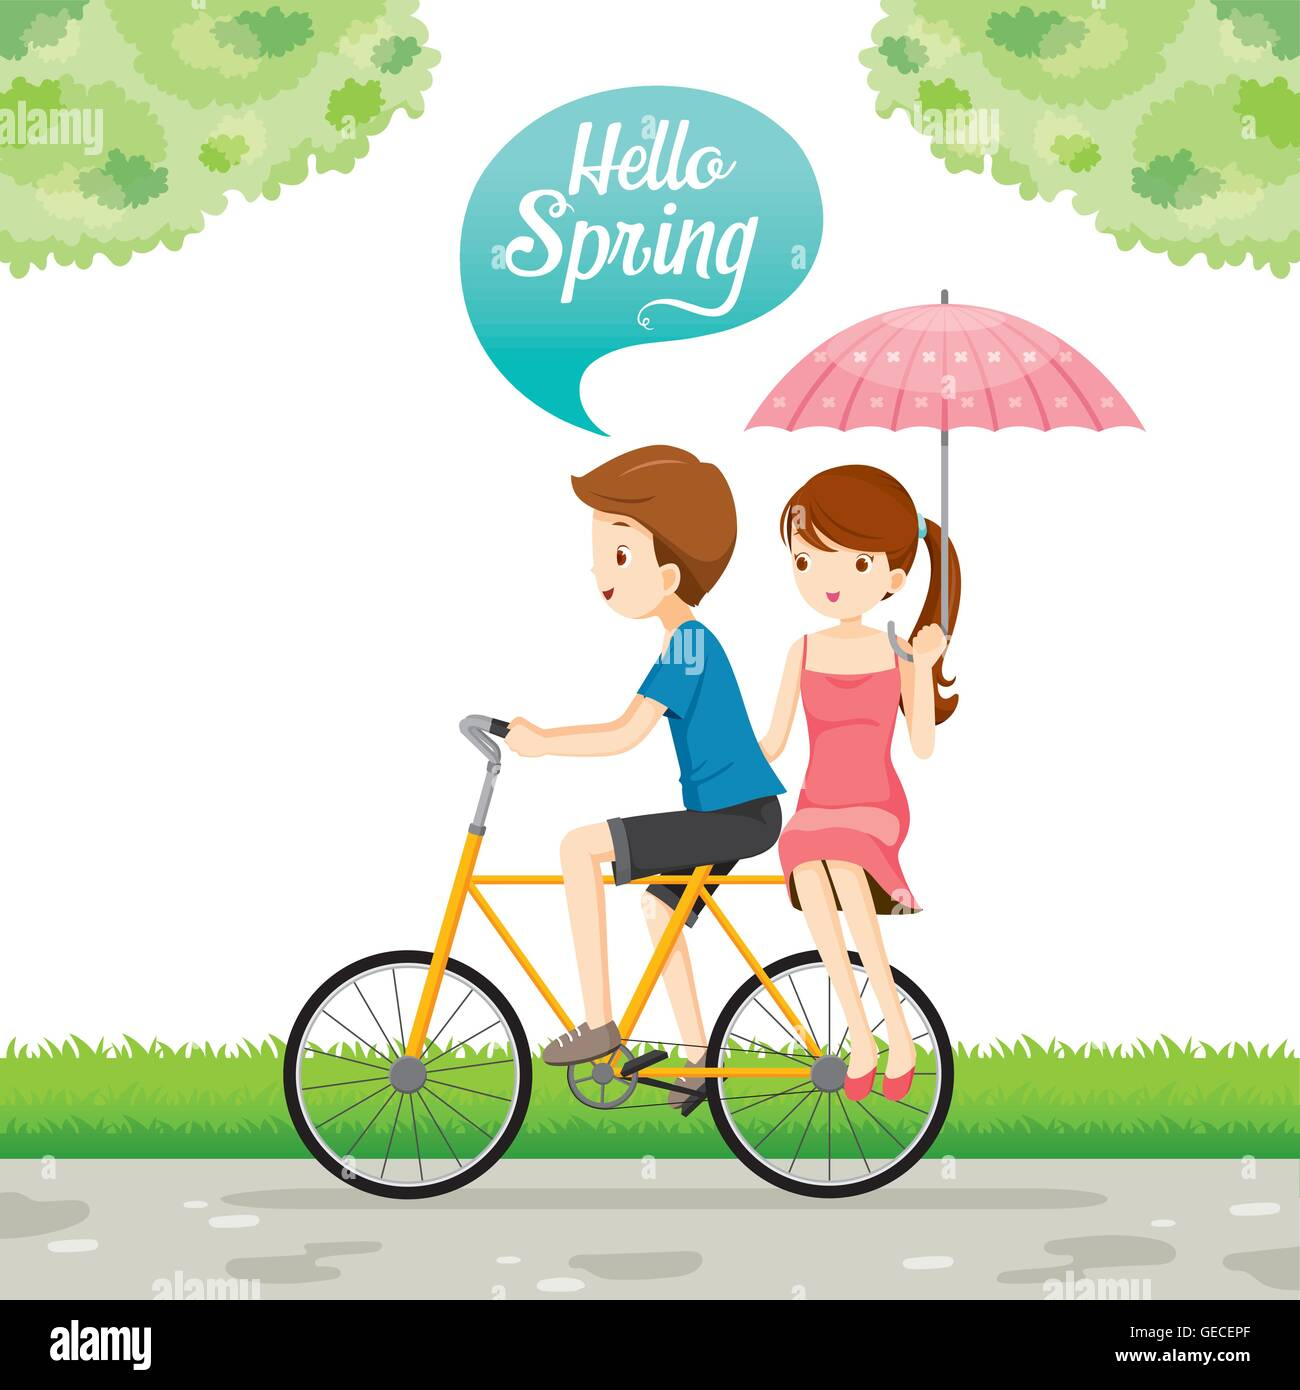 Man Riding Bicycle And Woman Sitting Behind, Spring Season, Lettering, Transportation, Vehicle, Exercise - Stock Vector